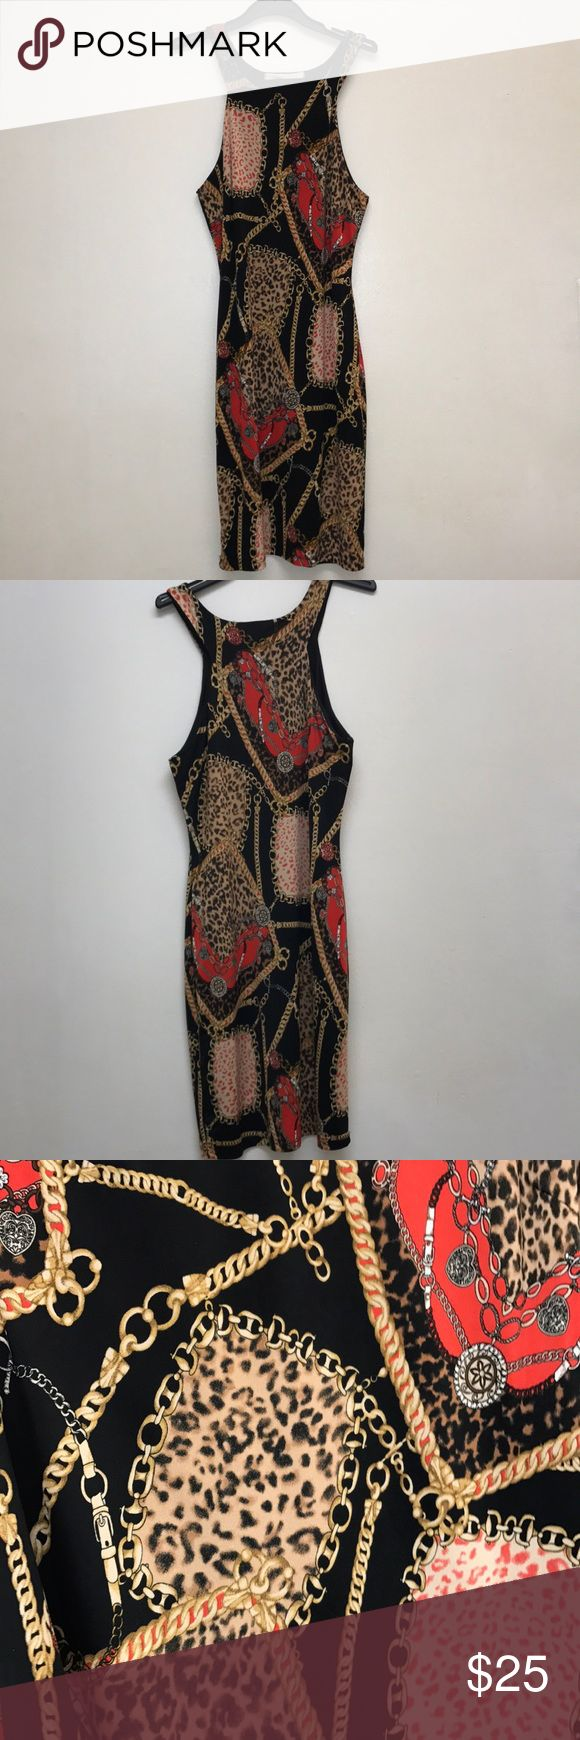 Super Sexy Patterned Sweet Rain Mini Festive Dress Size S Symmetrical dress Perfect for festive occasions Very soft material Pattern throughout  Lies very smoothly on the body Sweet Rain Dresses Mini